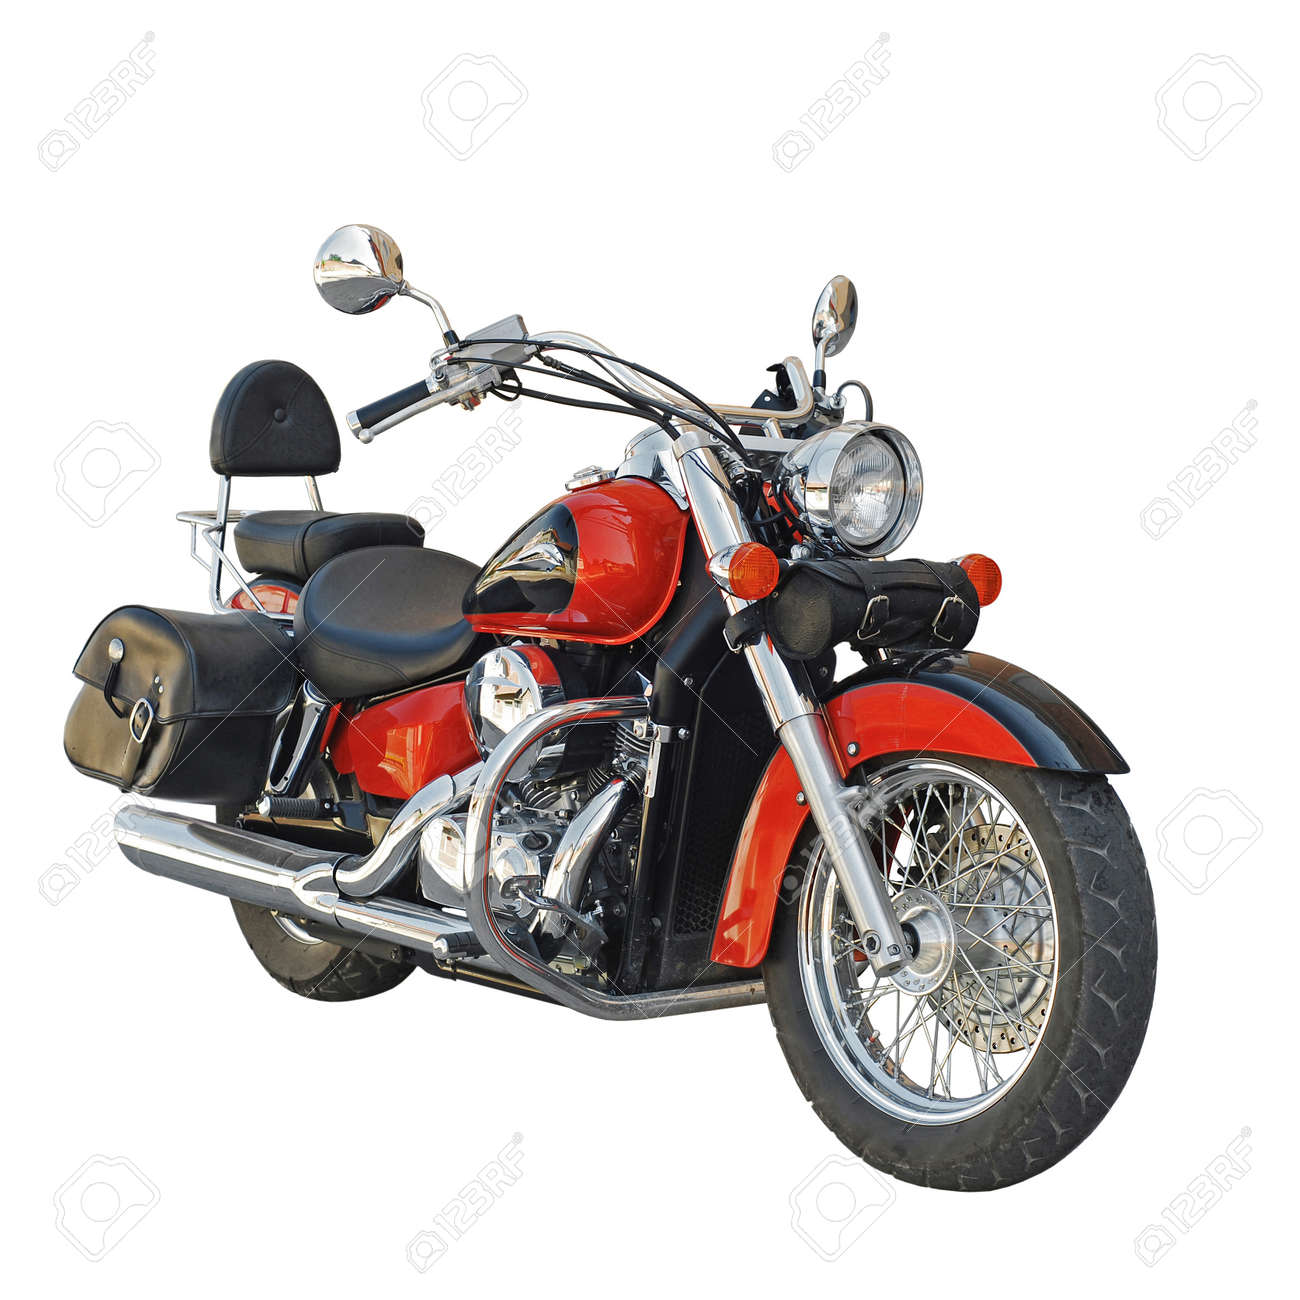 free motorcycle d  Motorcycle D Stock Photo, Picture And Royalty Free Image. Image ...